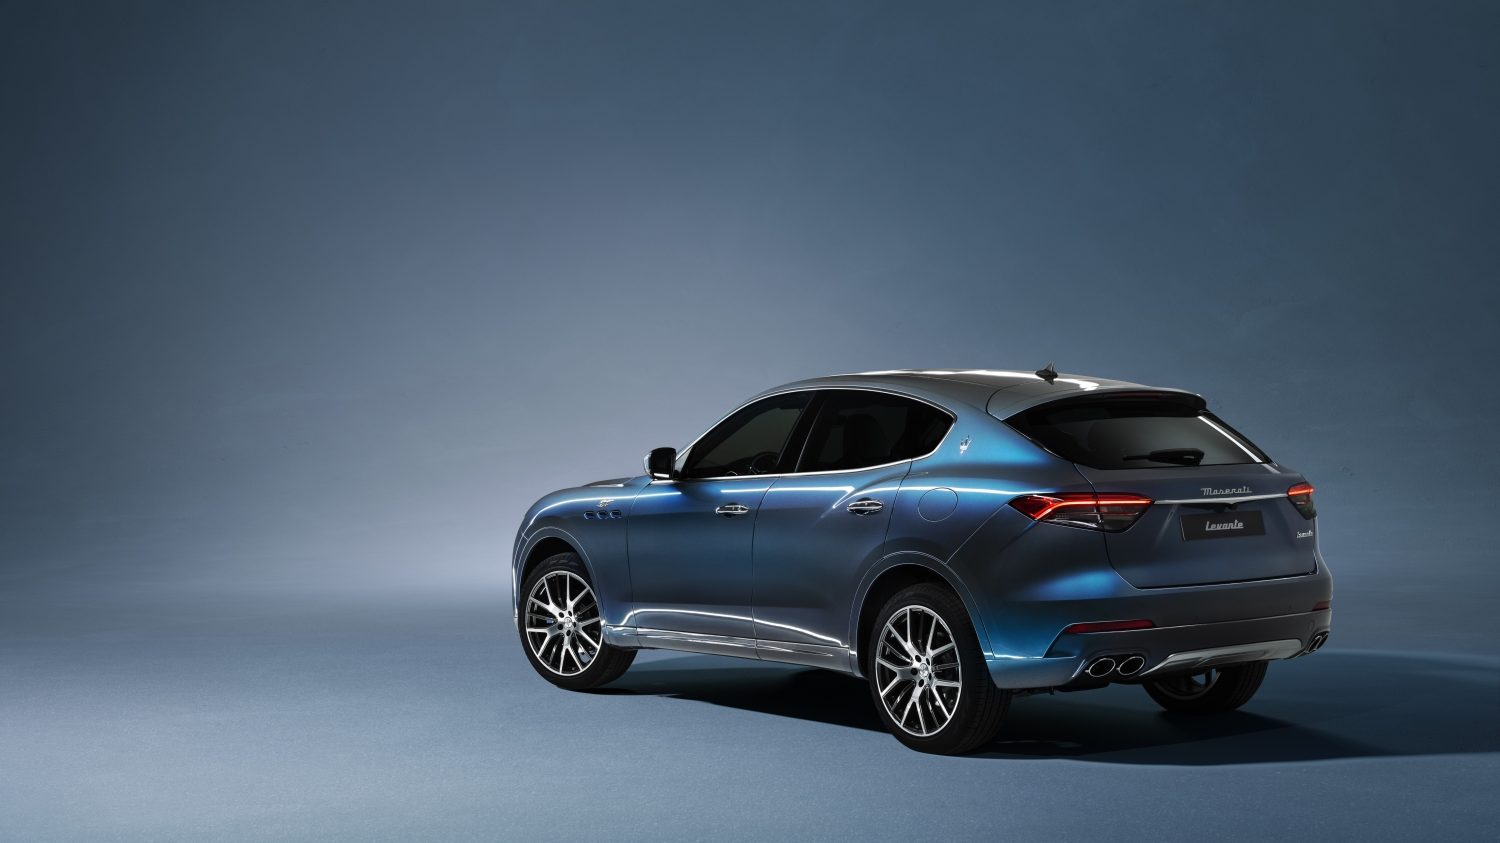 An image of a Maserati Levante Hybrid parked in a studio.